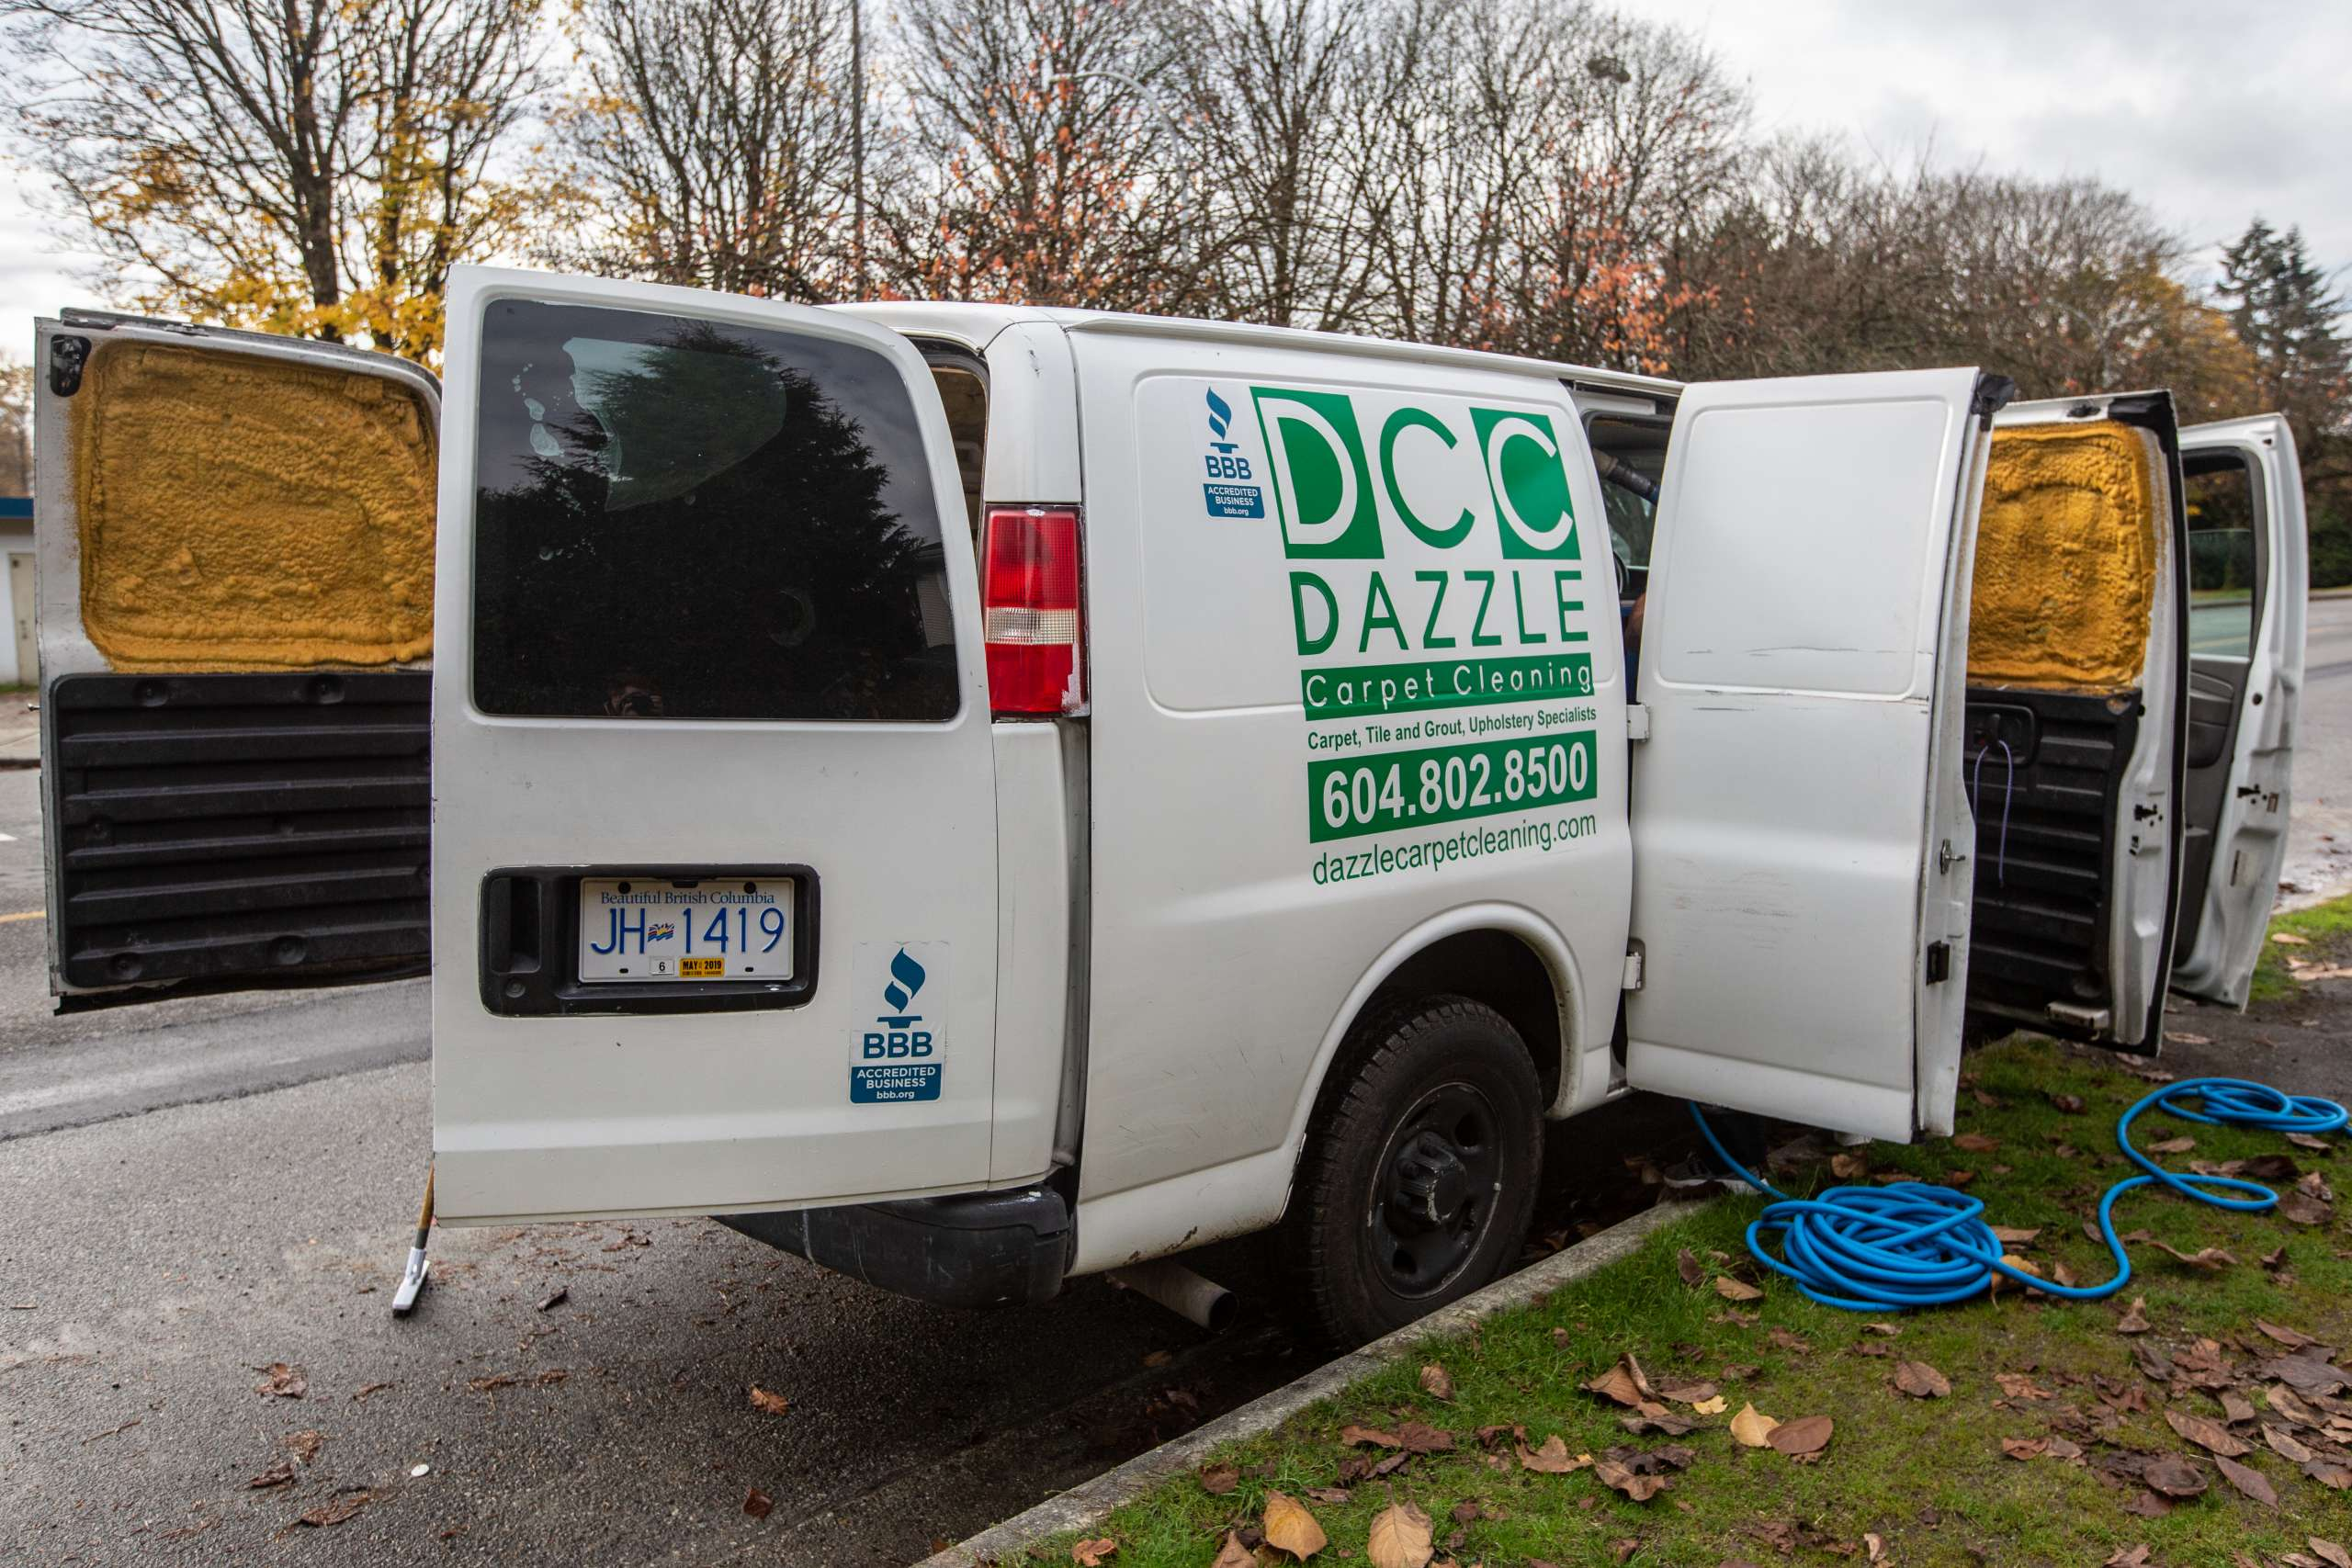 Commercial Cleaning Services New West: Dazzle CC